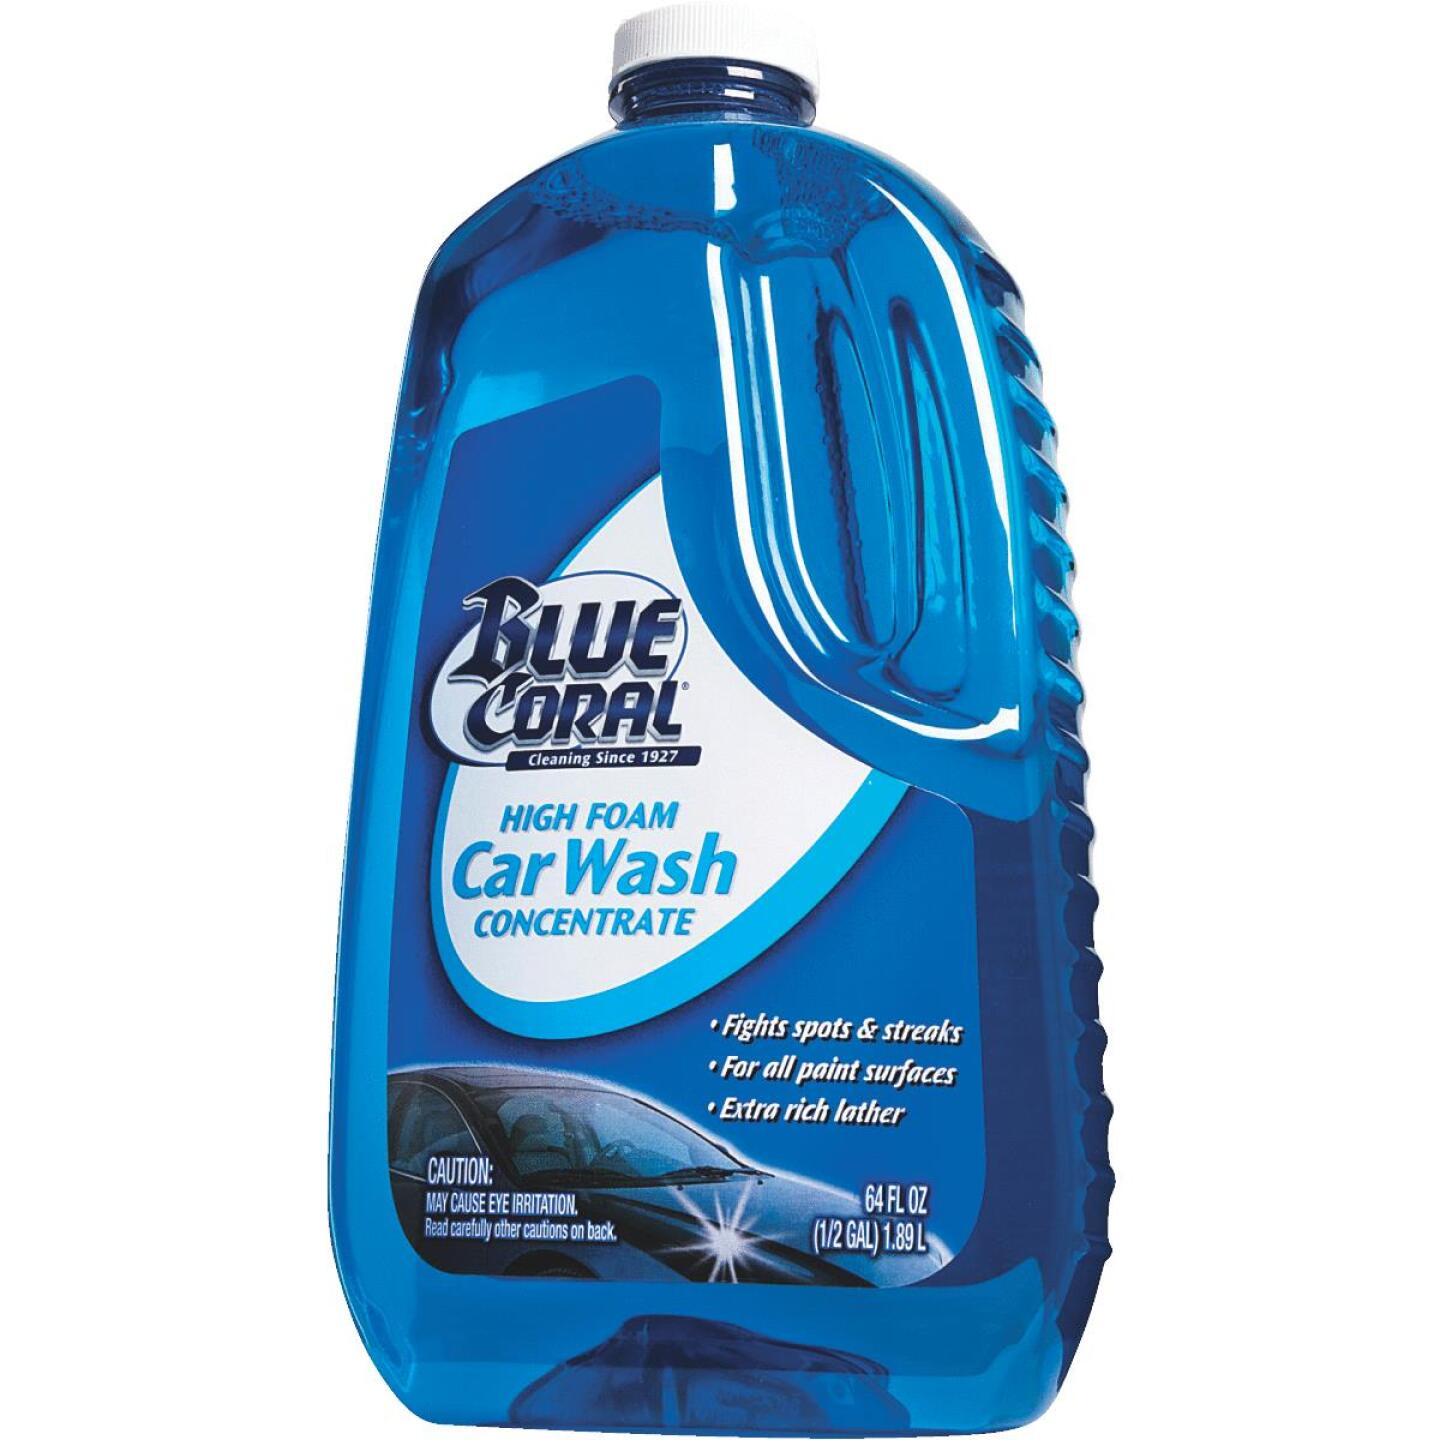 Blue Coral 64 Oz. Liquid High Foam Concentrate Car Wash Image 6